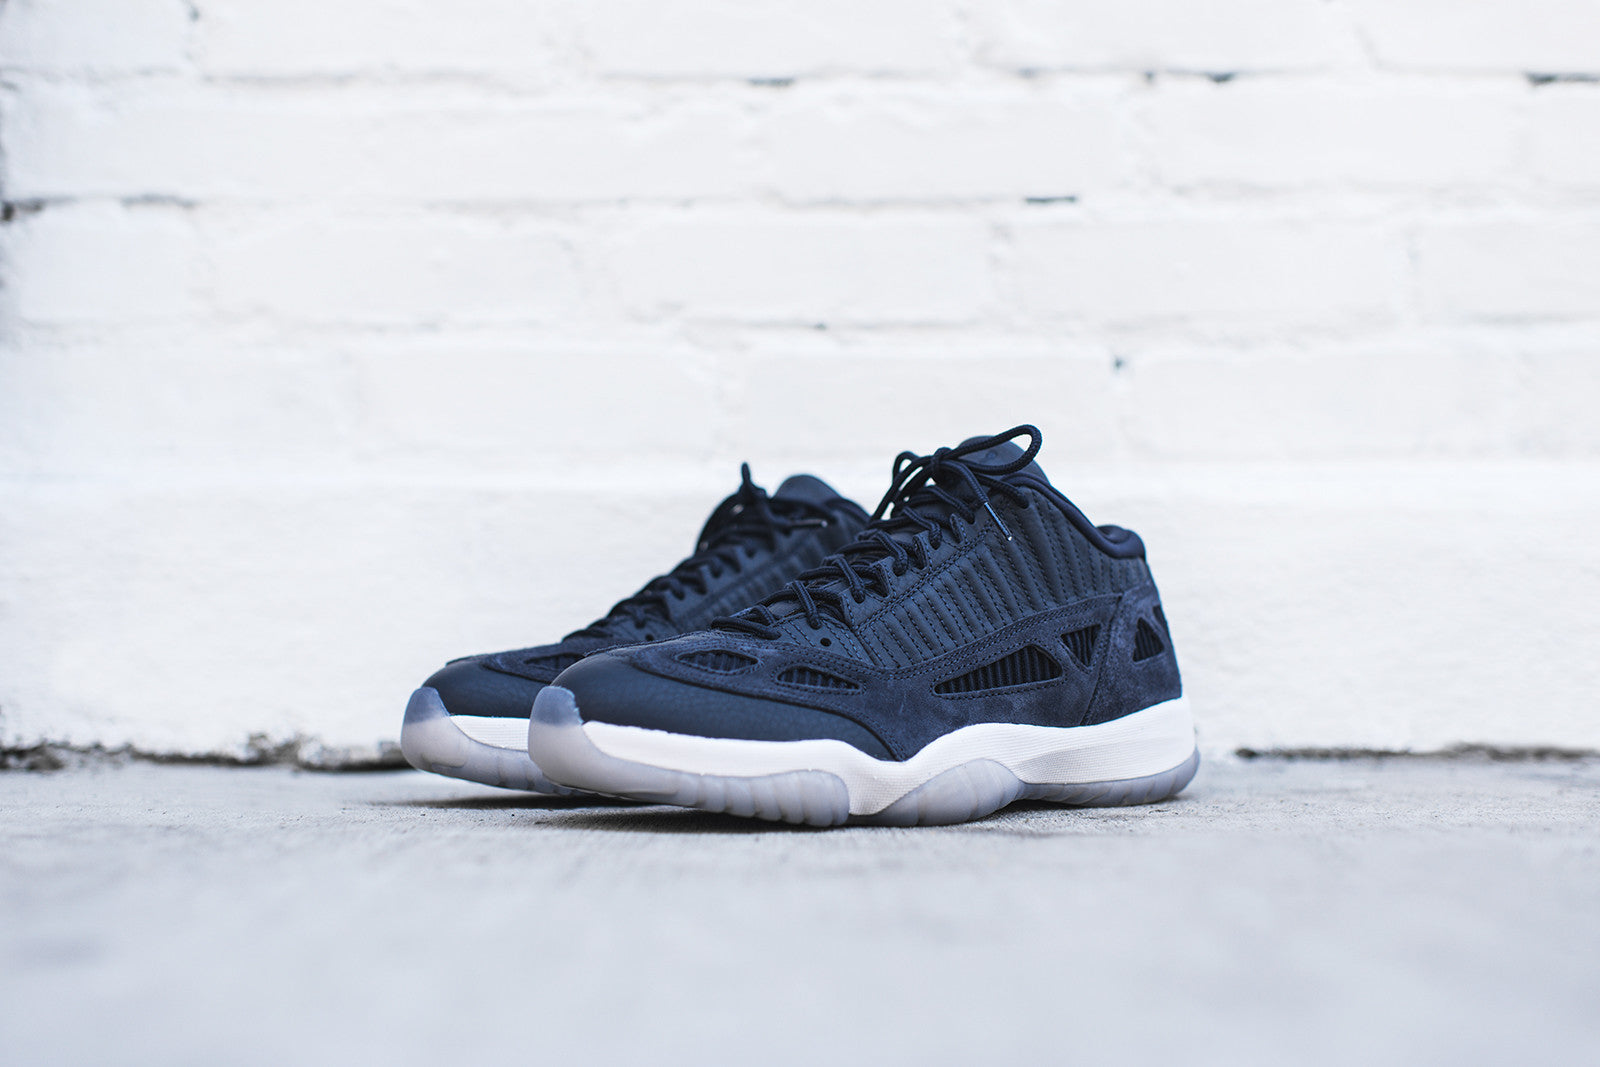 online store 767c6 db11b Nike Air Jordan 11 Retro Low LE - Navy   White – Kith